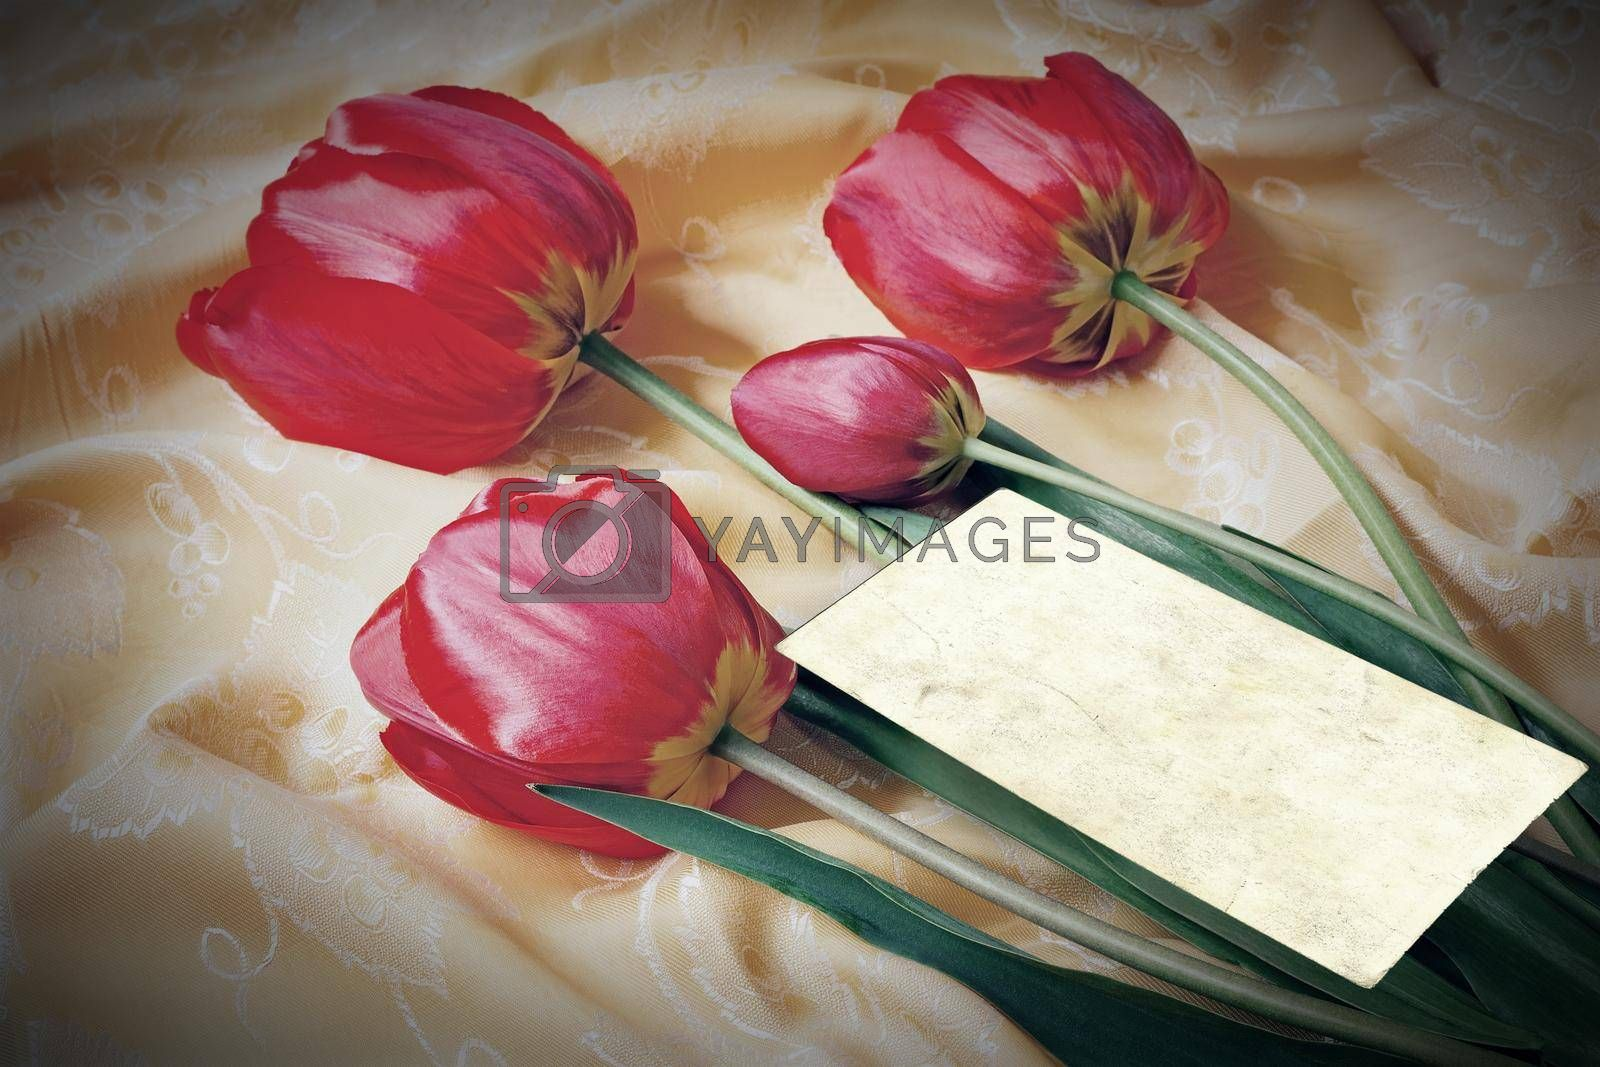 One big beautiful tulip of bright red color against the beautiful draped yellow silk. It is presented by a close up